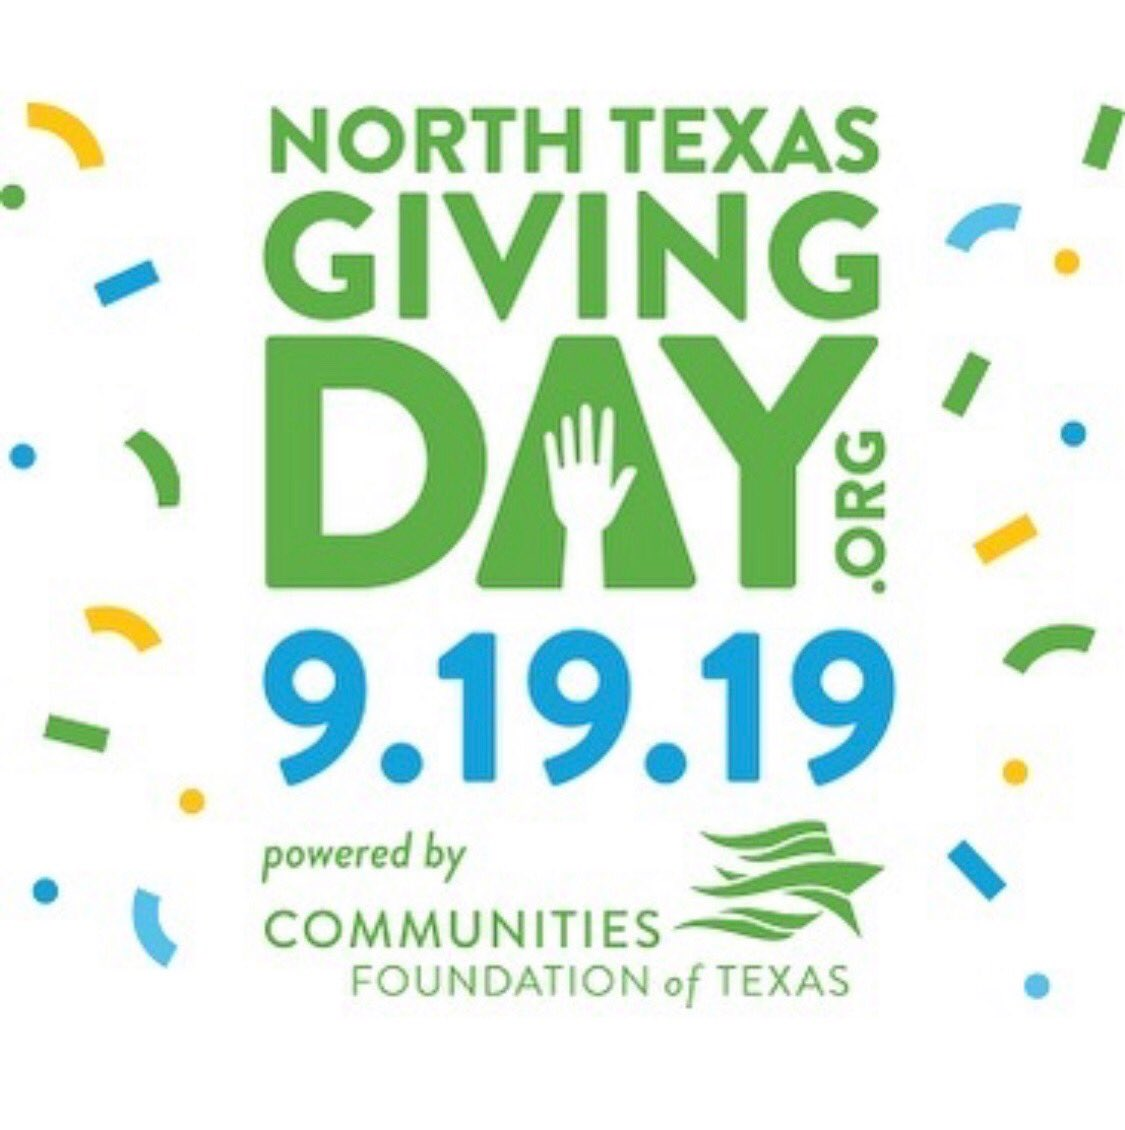 Tomorrow is the big day! No gift is too small! Get up and give on #NTxGivingDay  @GiveWisely